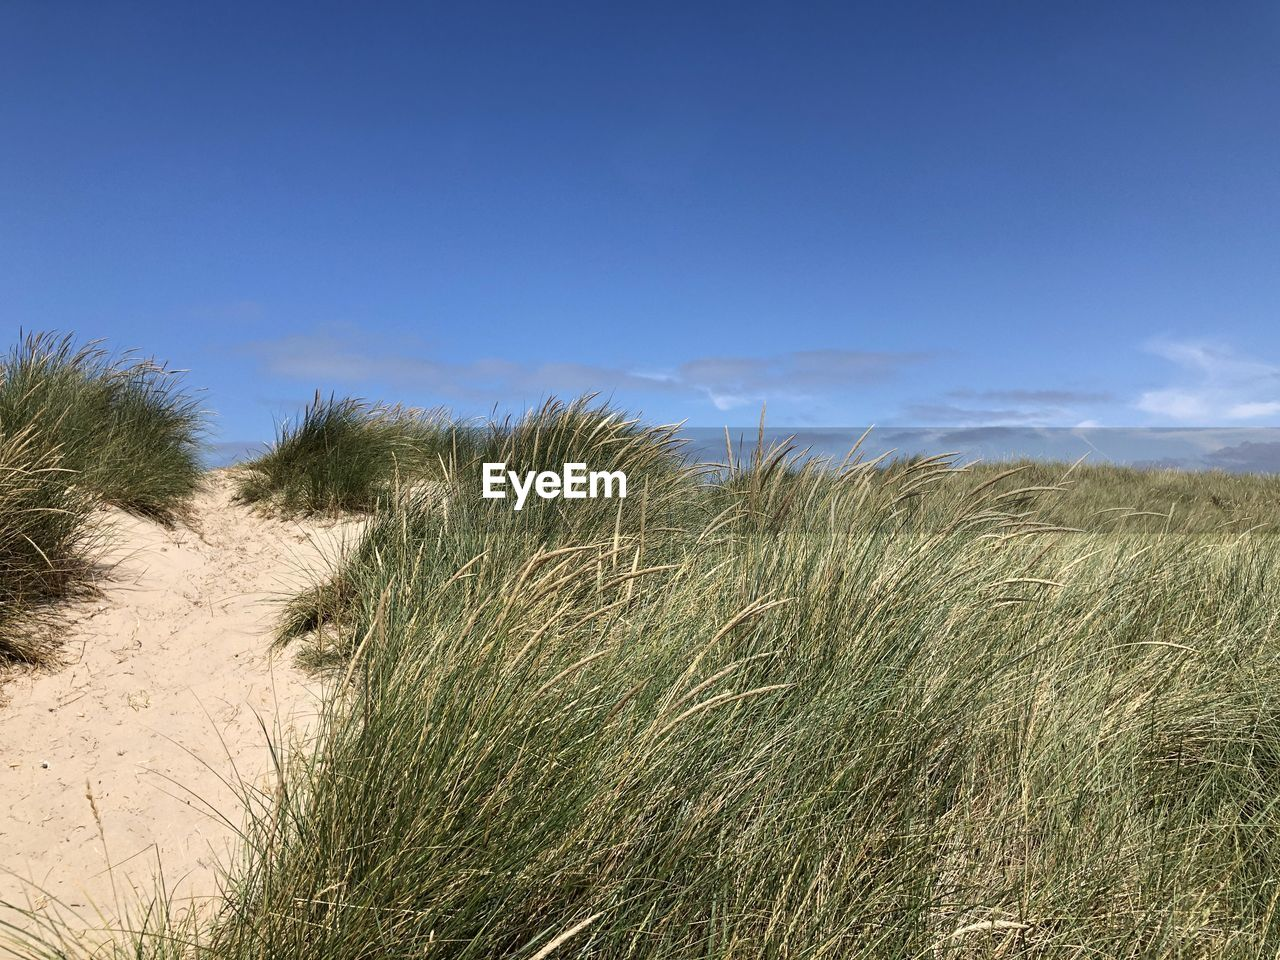 plant, sky, land, grass, tranquility, growth, nature, beauty in nature, tranquil scene, scenics - nature, day, environment, landscape, non-urban scene, sand, no people, field, beach, blue, cloud - sky, outdoors, marram grass, wind, timothy grass